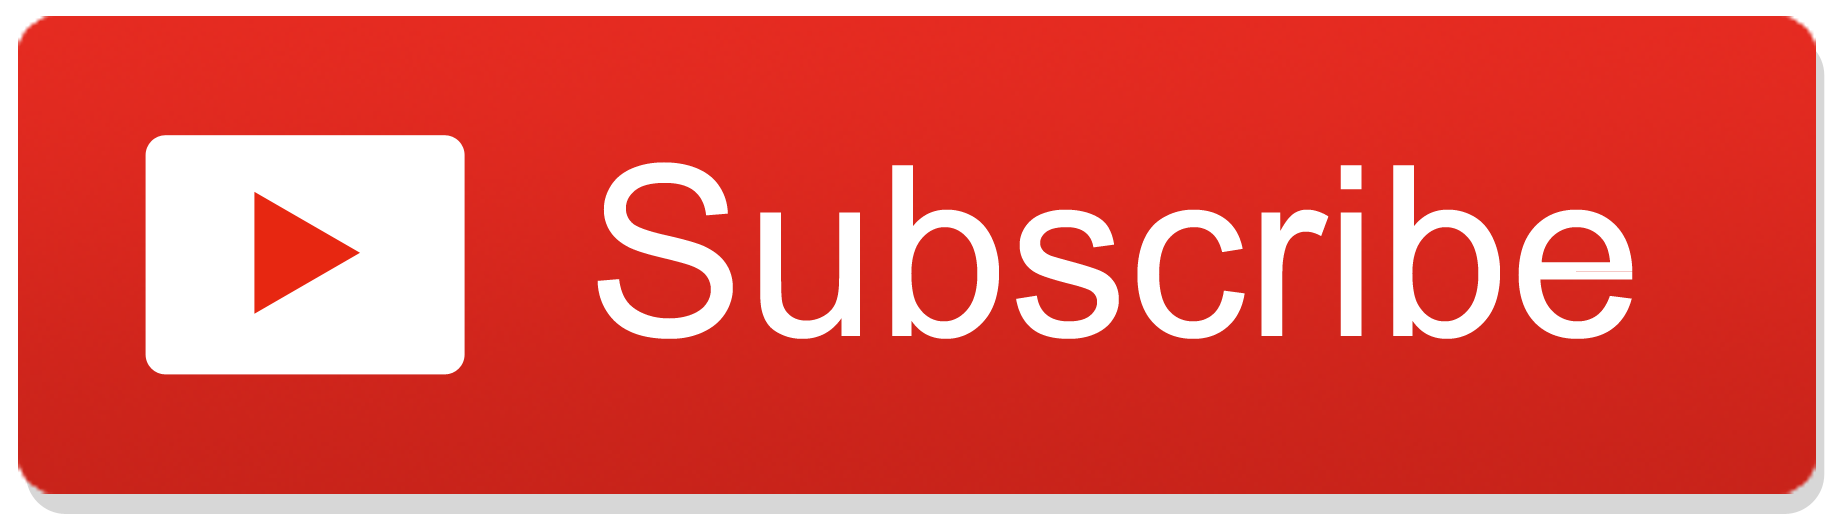 Youtube subscribe button classic png #39347.